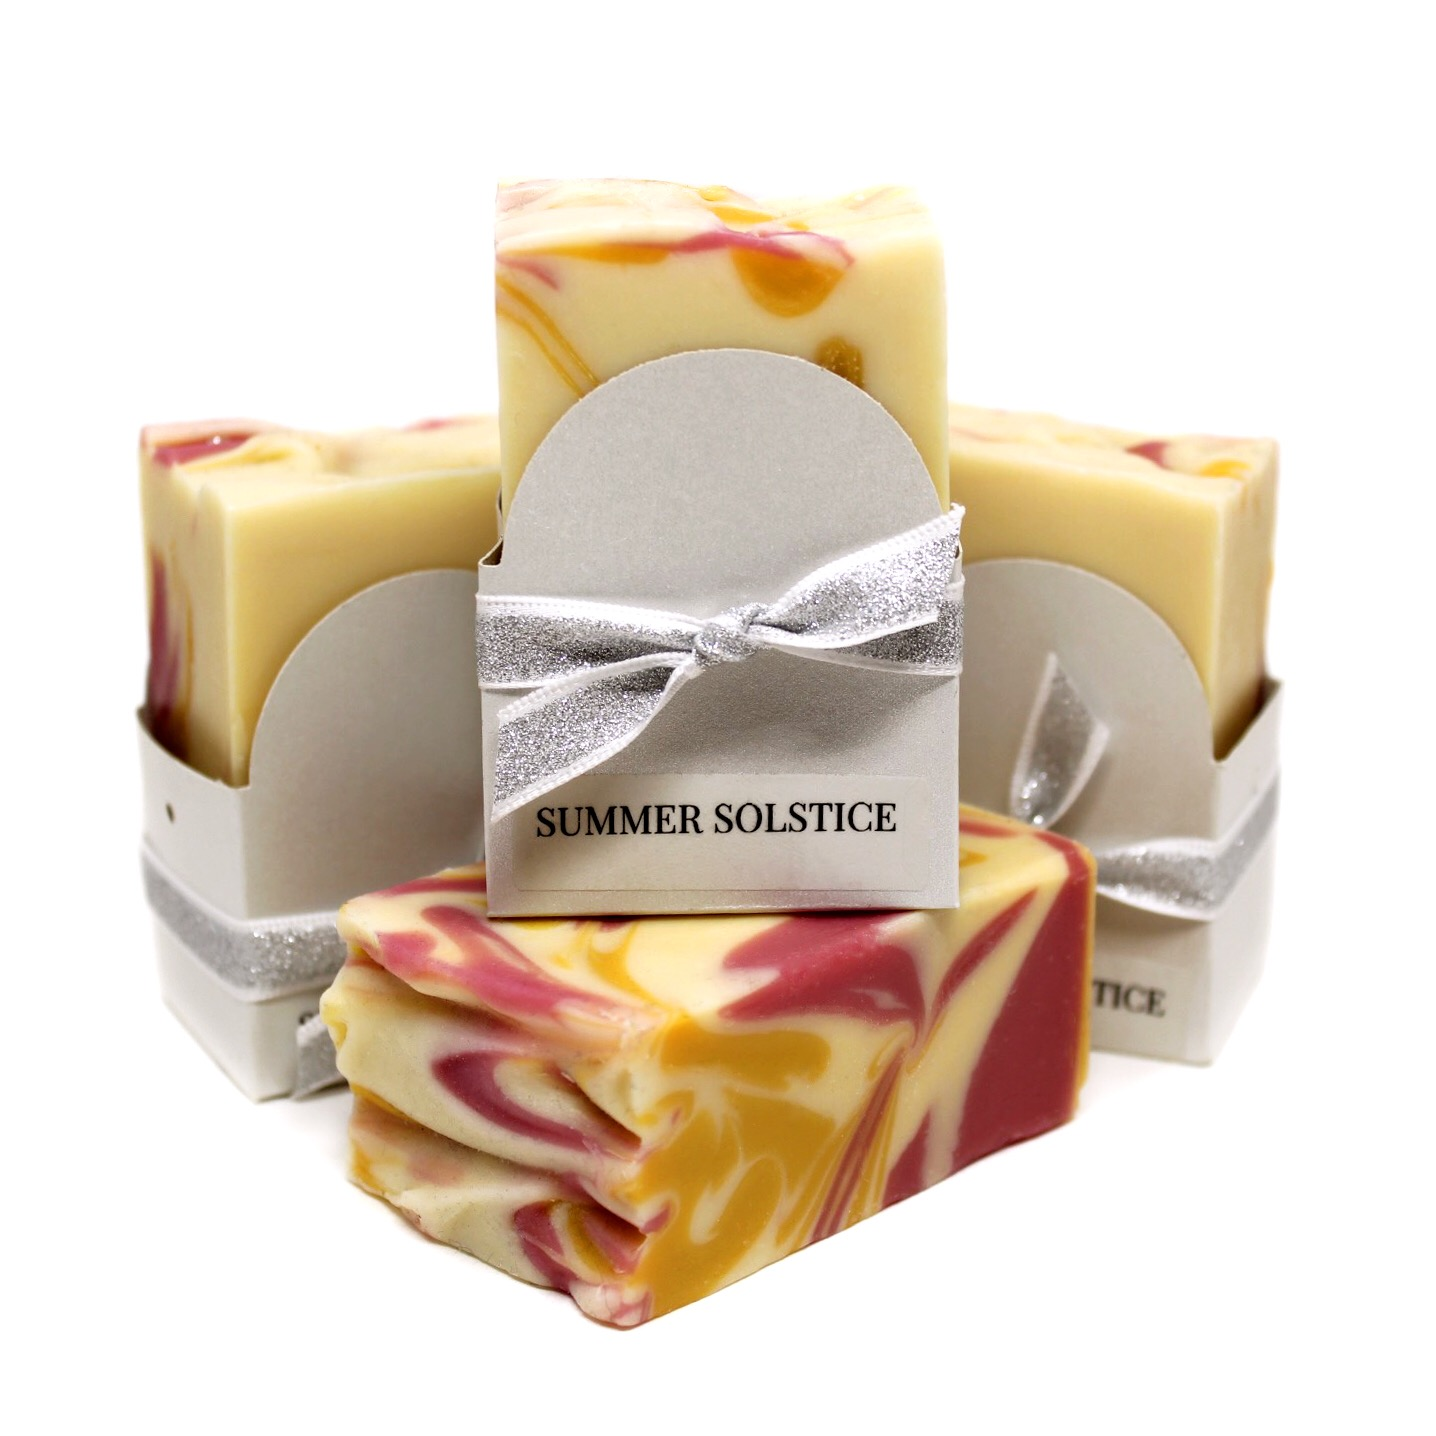 Summer Solstice Goat Milk Soap